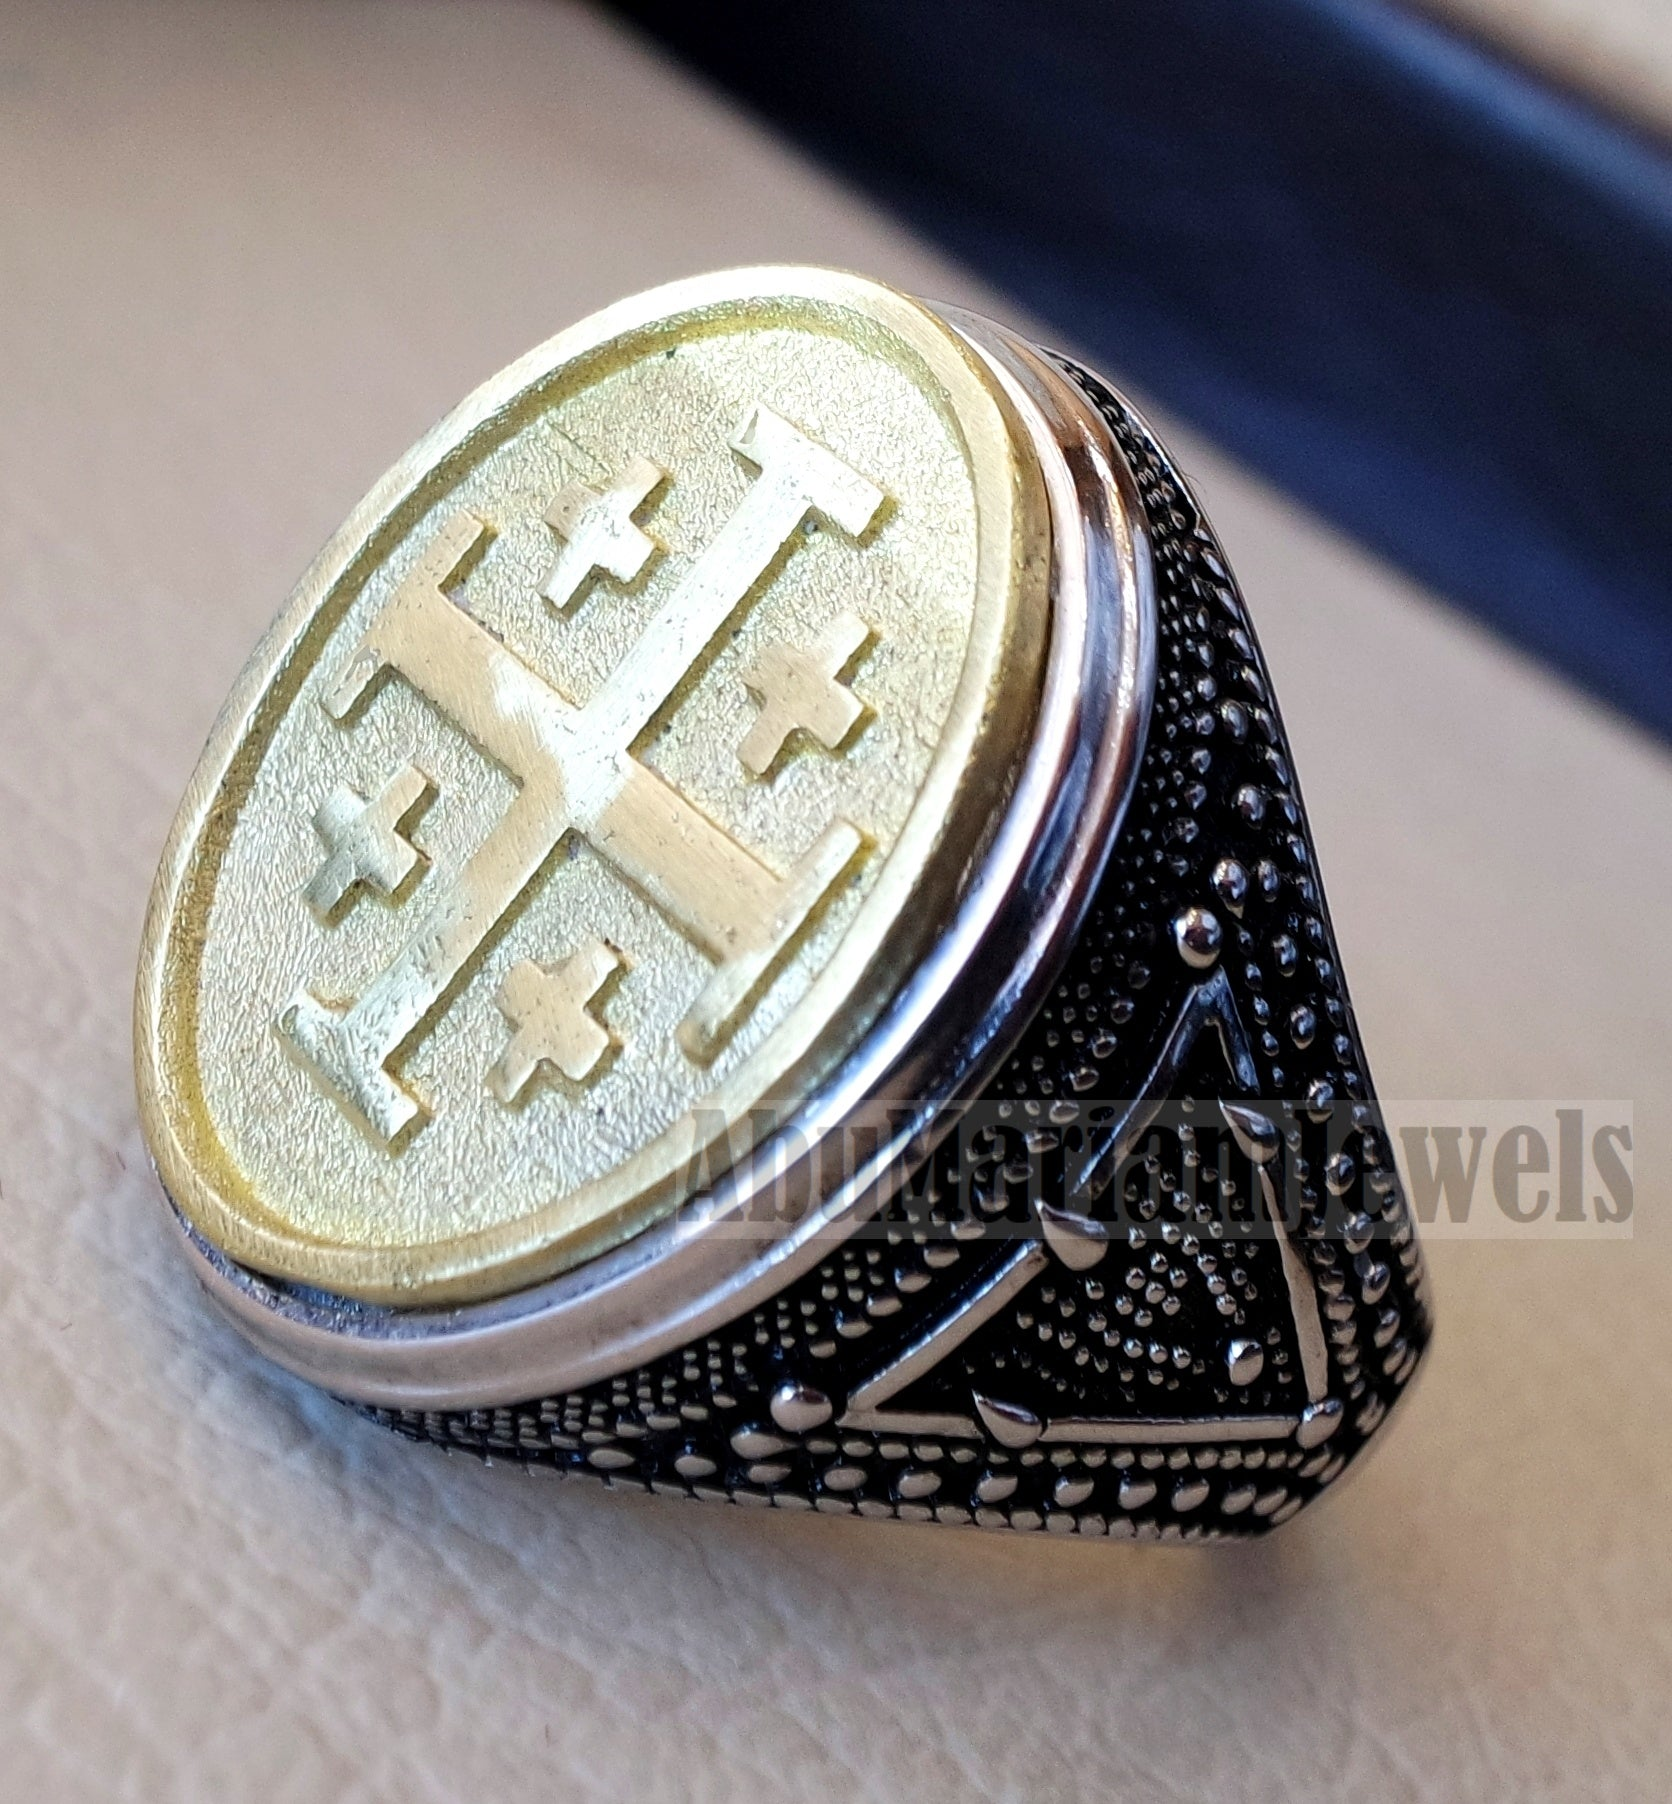 Jerusalem Cross ring christ christian symbol sterling silver 925 and bronze man gift jewelry oval vintage style all sizes Catholic Orthodox